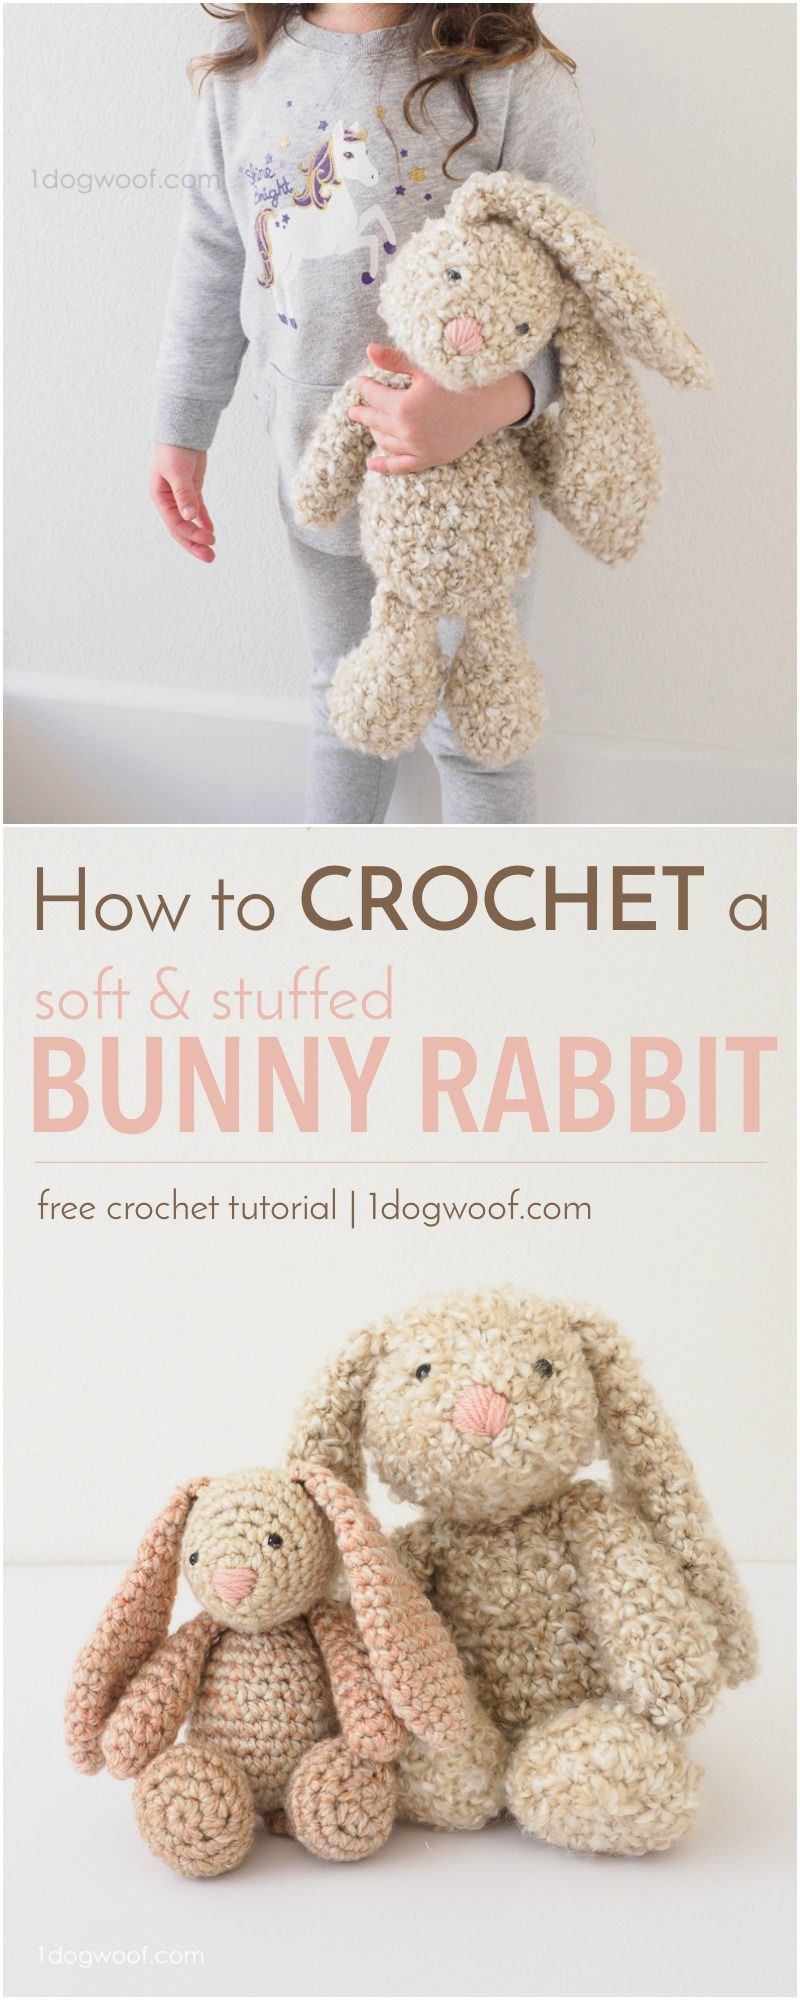 Classic Stuffed Bunny Crochet Pattern for Easter | crafty ...